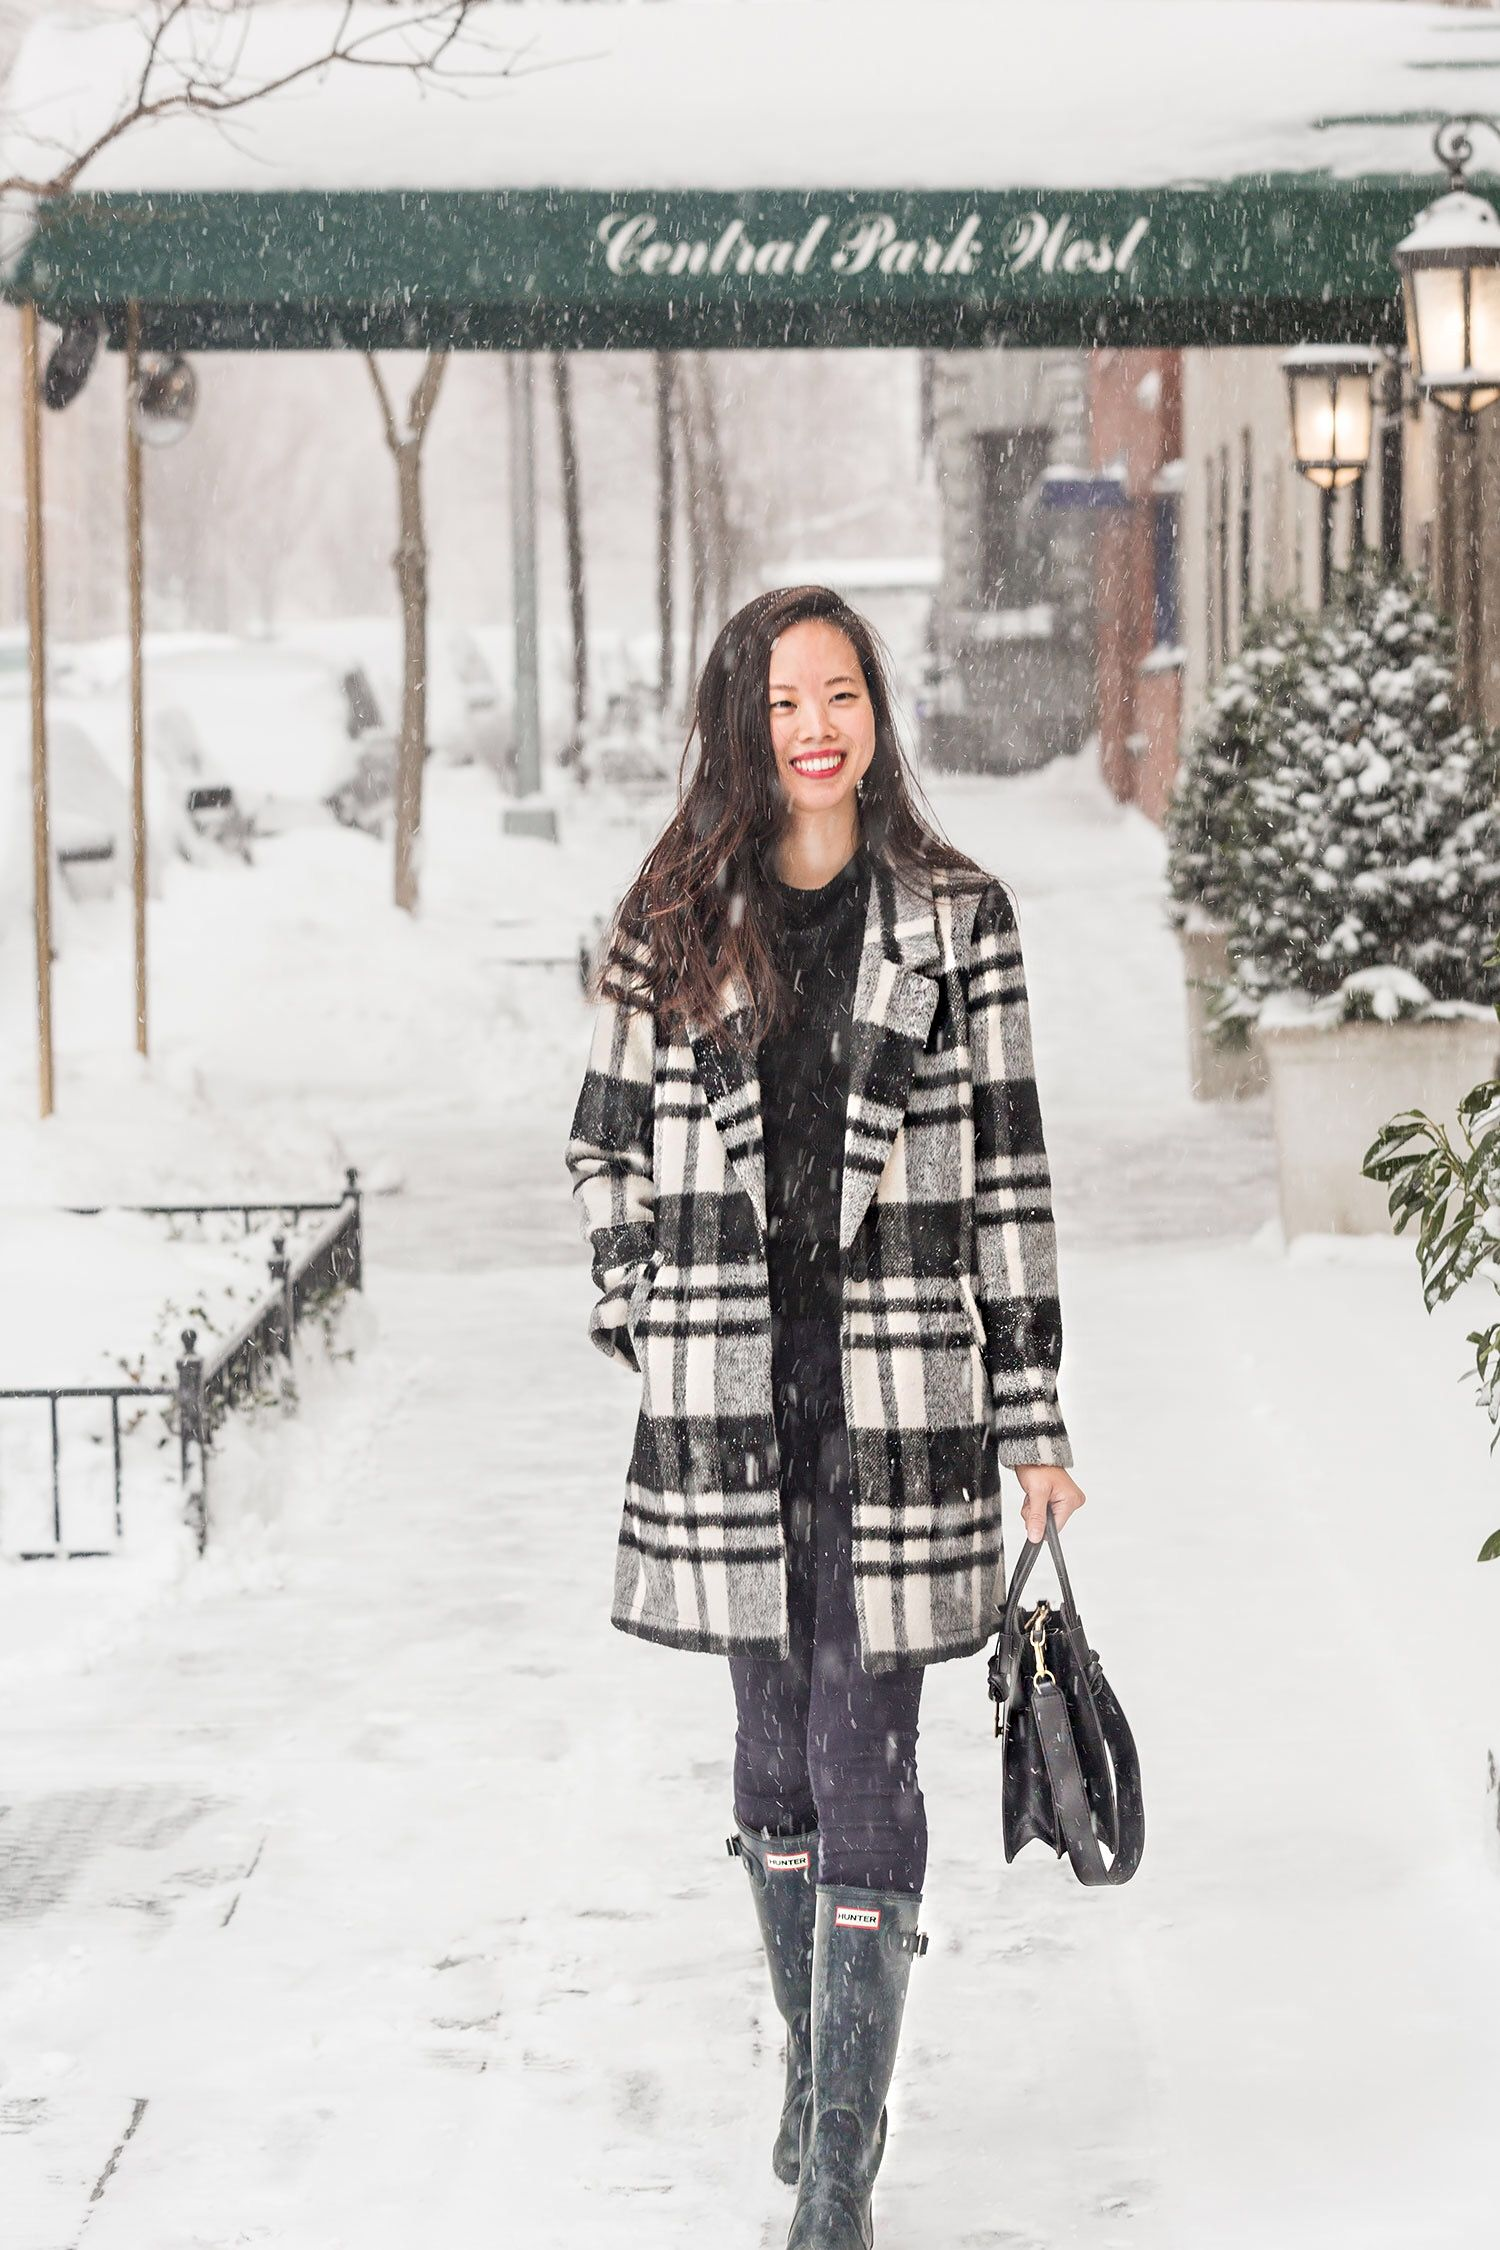 Fashion week Stylish Inspiring stitched winter collection for women for lady